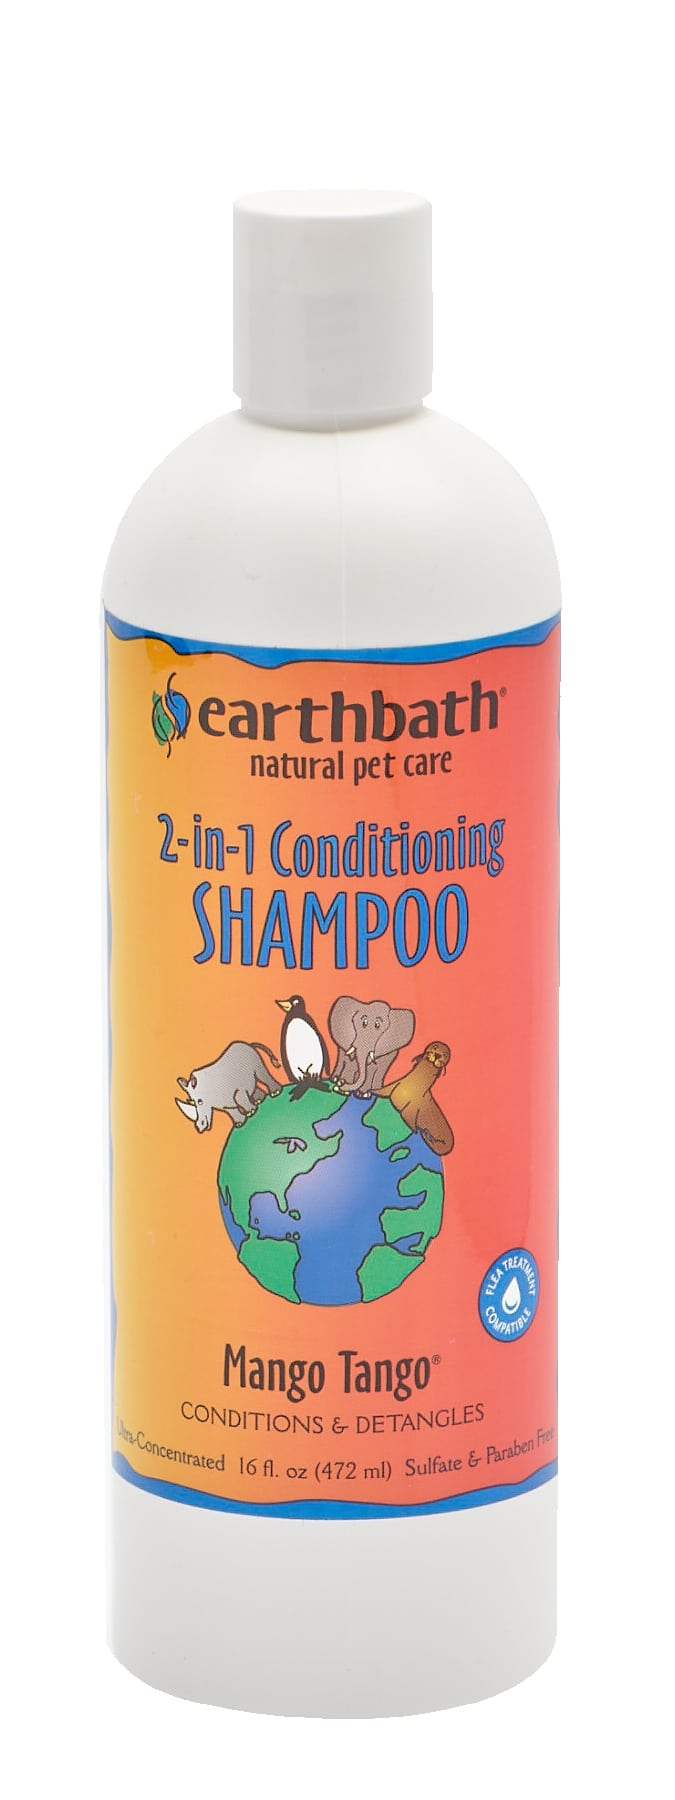 EARTHBATH MANGO TANGO SHAMPOO 473ML